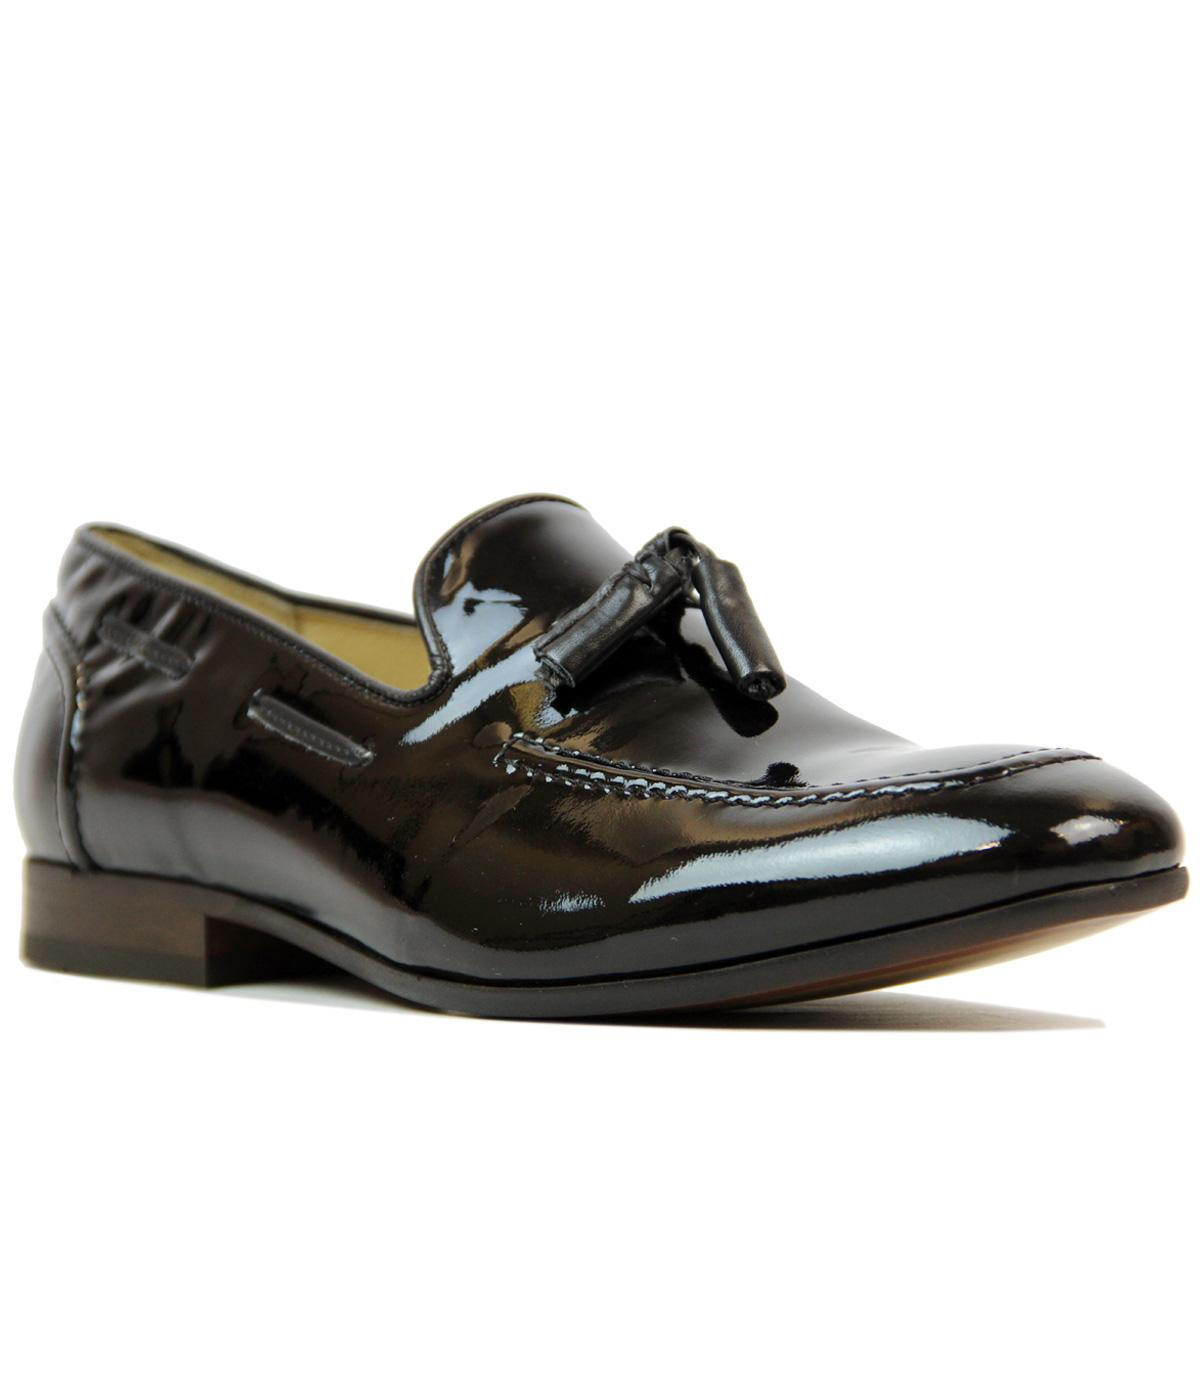 Pierre H by HUDSON 60s Mod Patent Leather Loafers